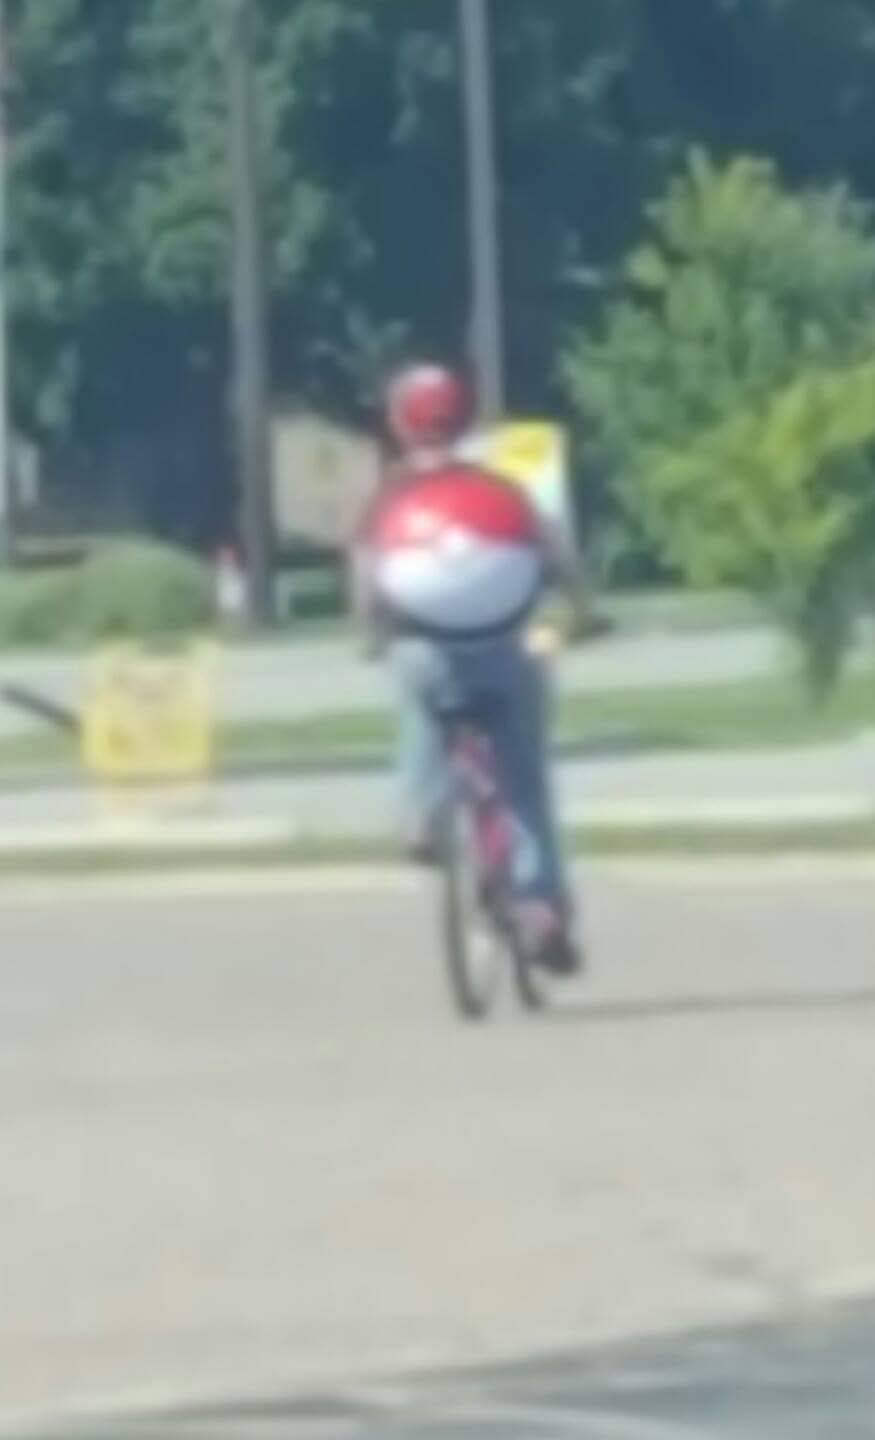 Here we see a loyal Pokemon Go CIA drone hard at work.